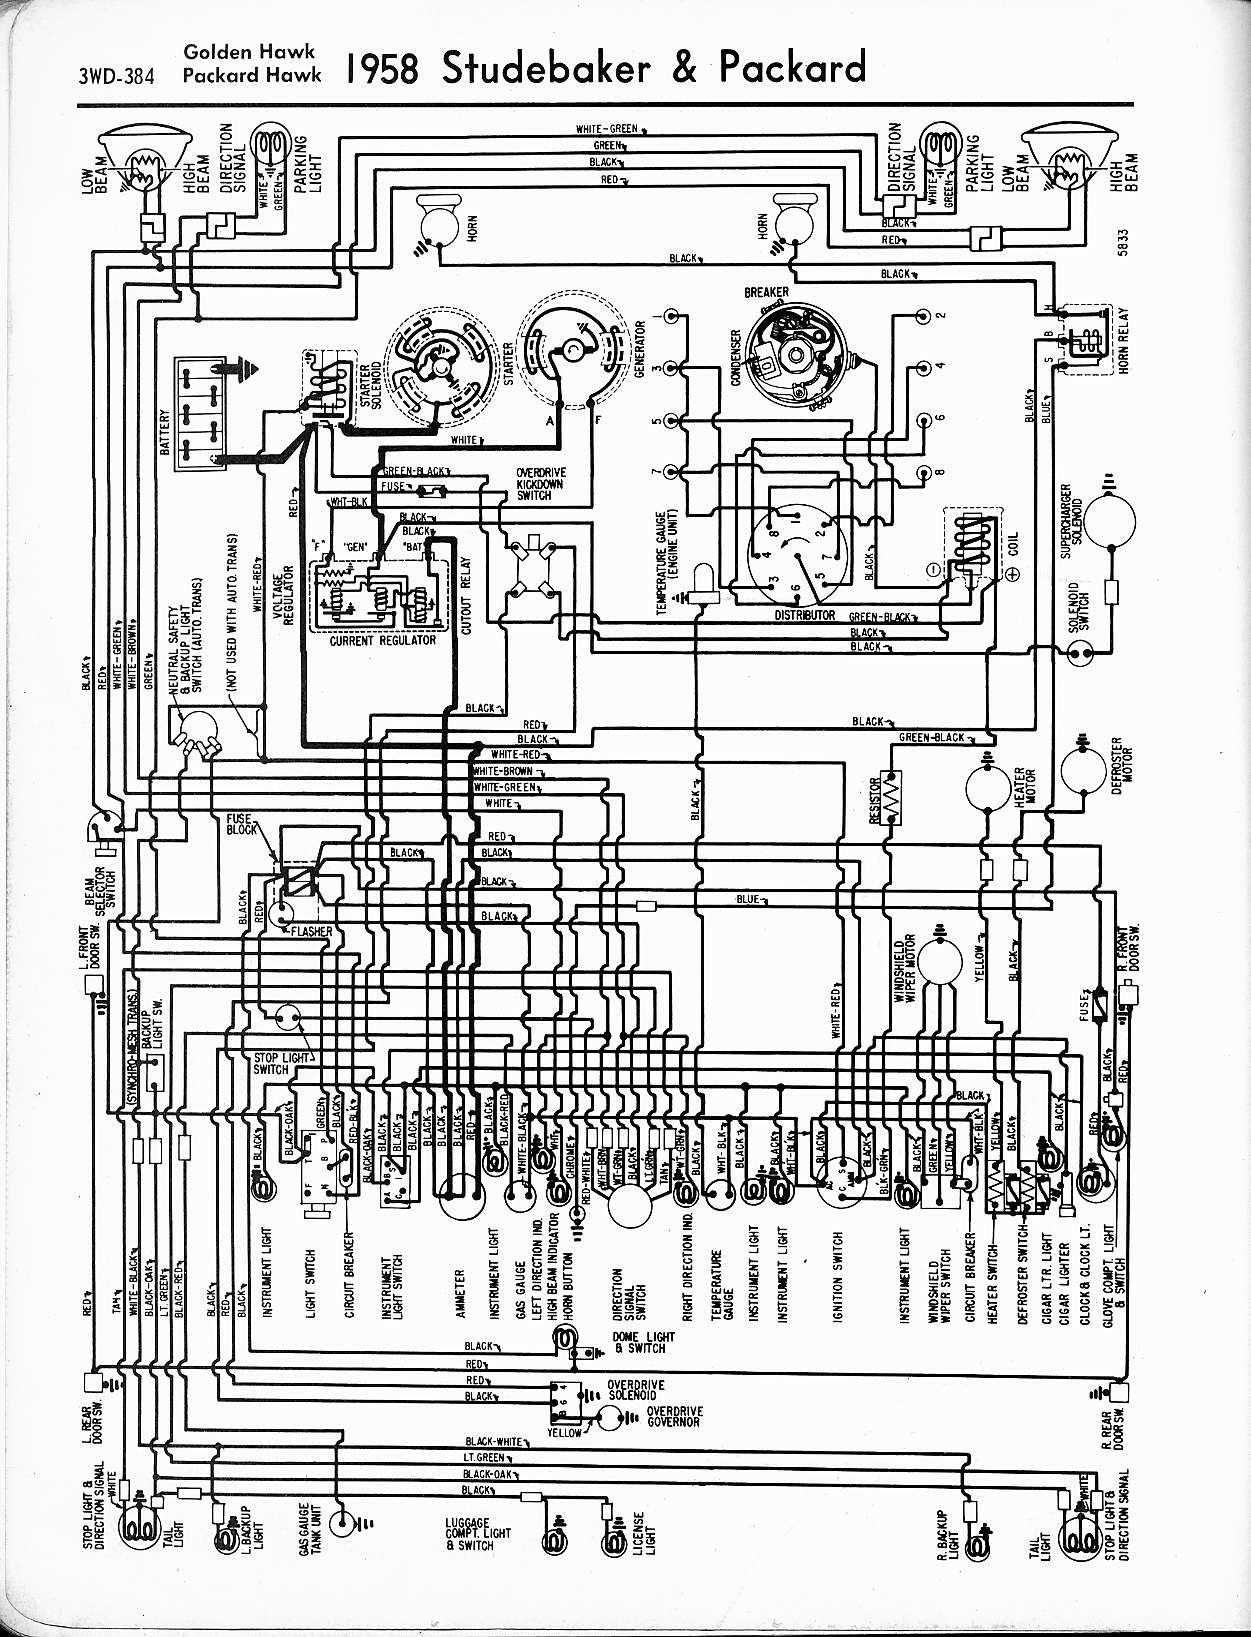 MWire5765 384 1948 packard wiring diagram on 1948 download wirning diagrams packard electric motor wiring diagram at edmiracle.co